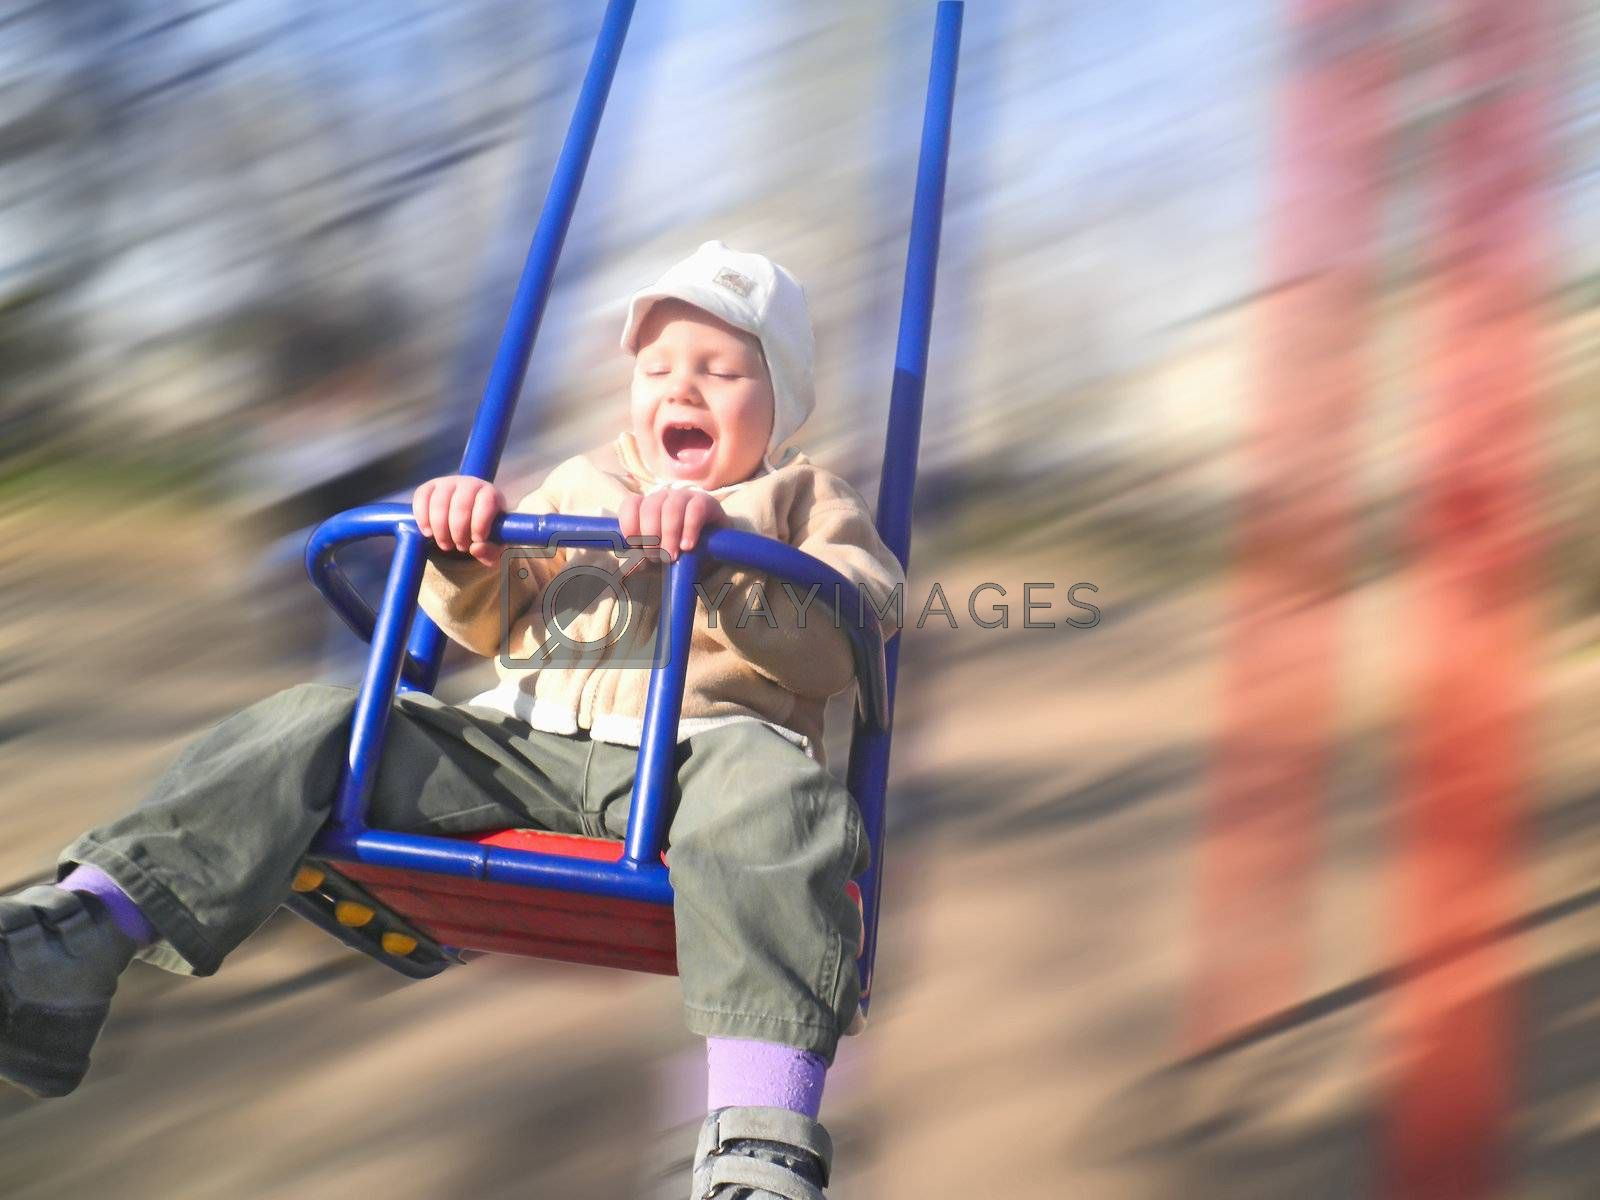 Enthusiastic kid on a swing